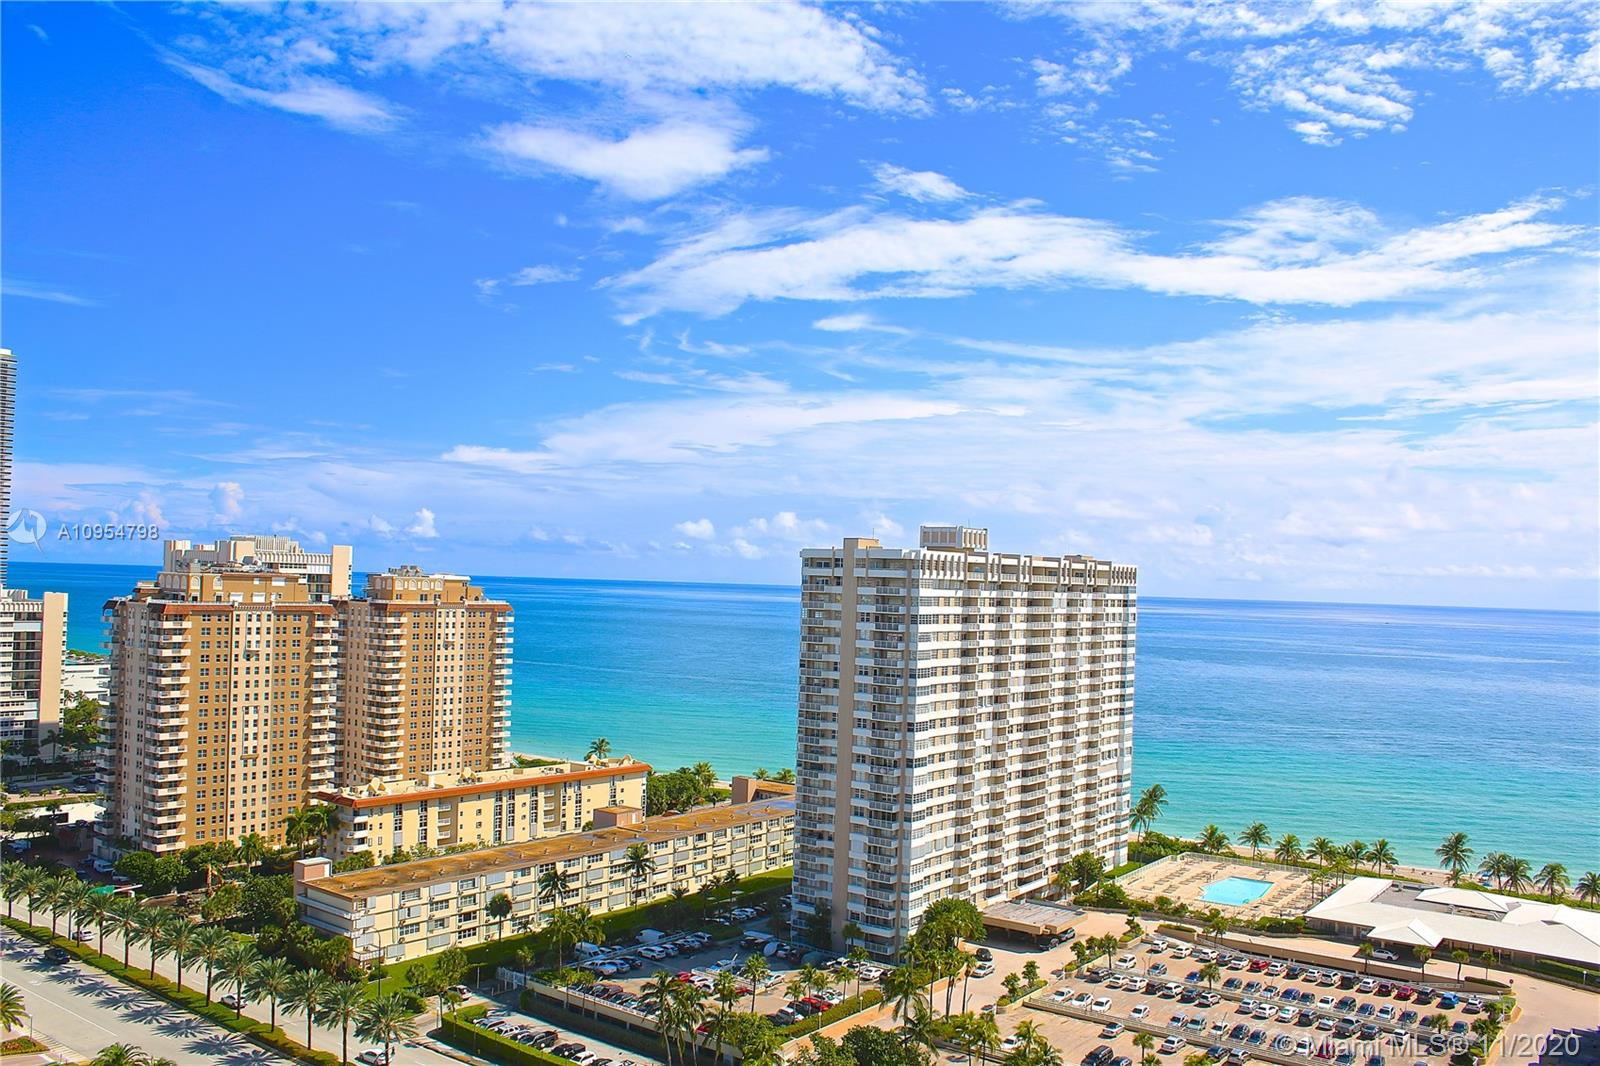 The Hemispheres Four #22D - 1985 S Ocean Dr #22D, Hallandale Beach, FL 33009